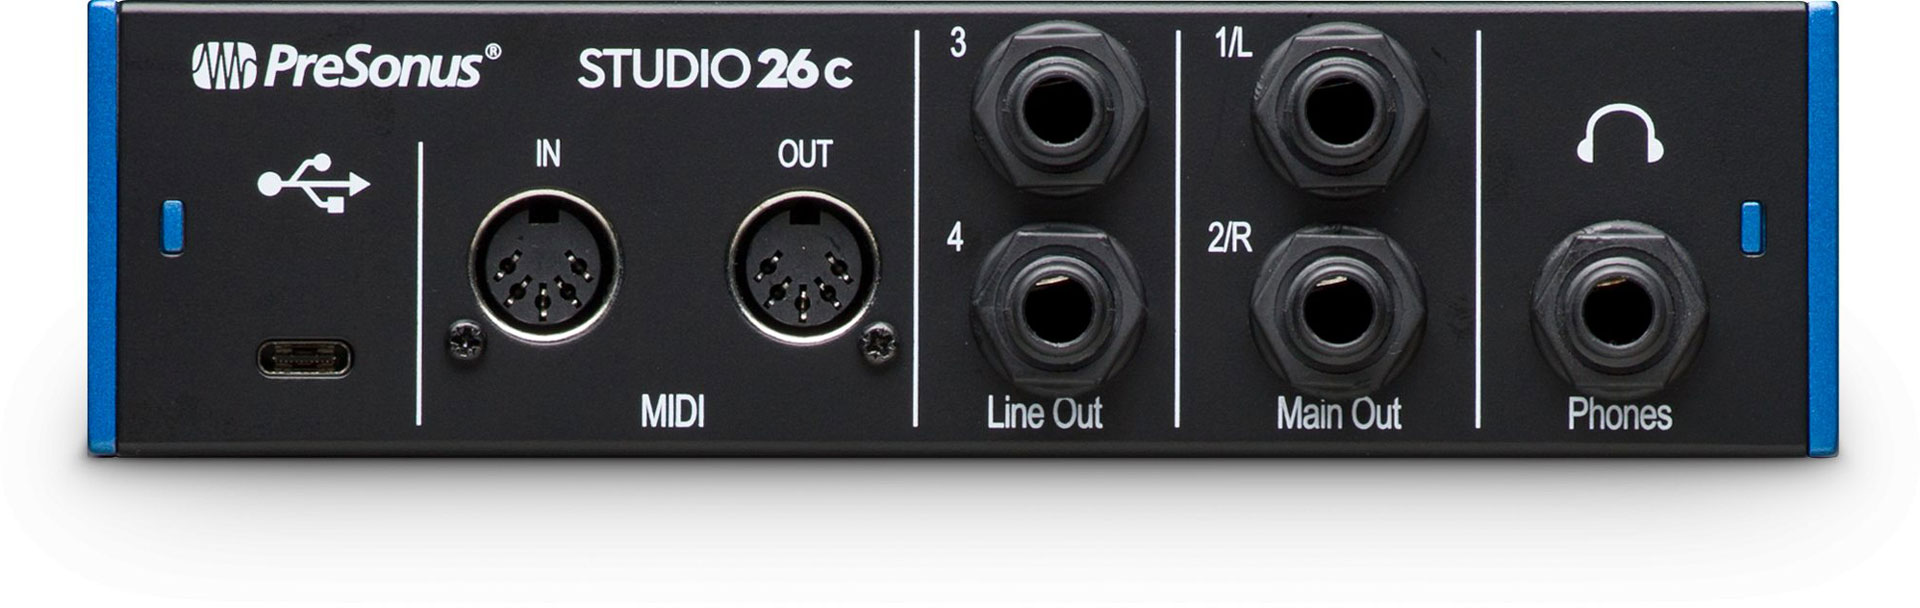 Presonus Studio 26c audio interface (rear)